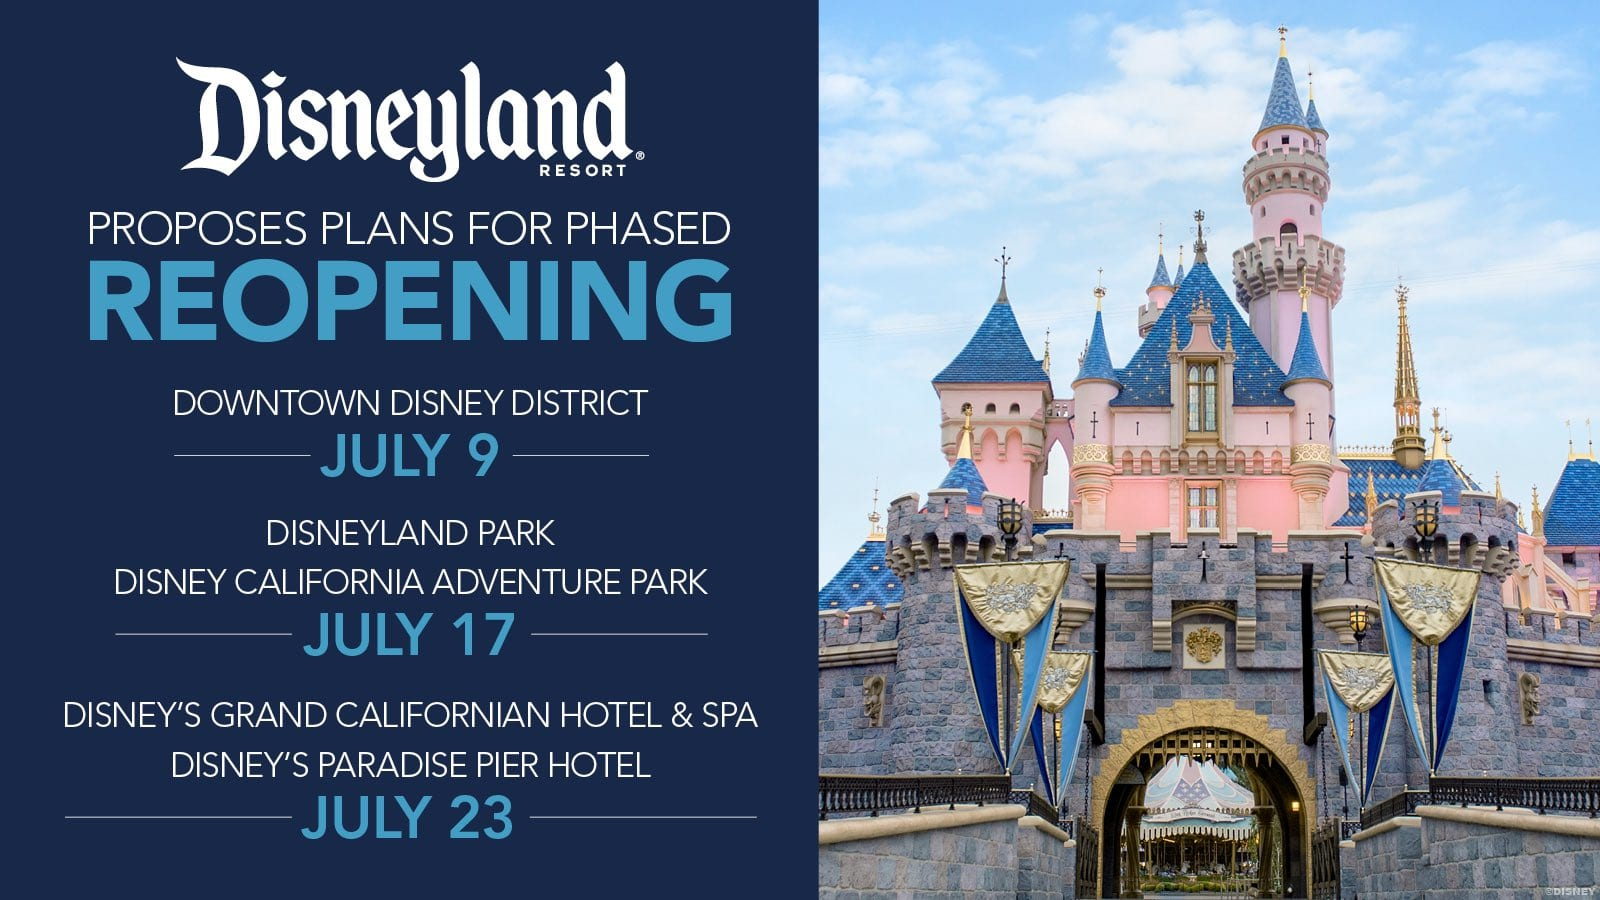 Disneyland Reopening Plan for July 2020